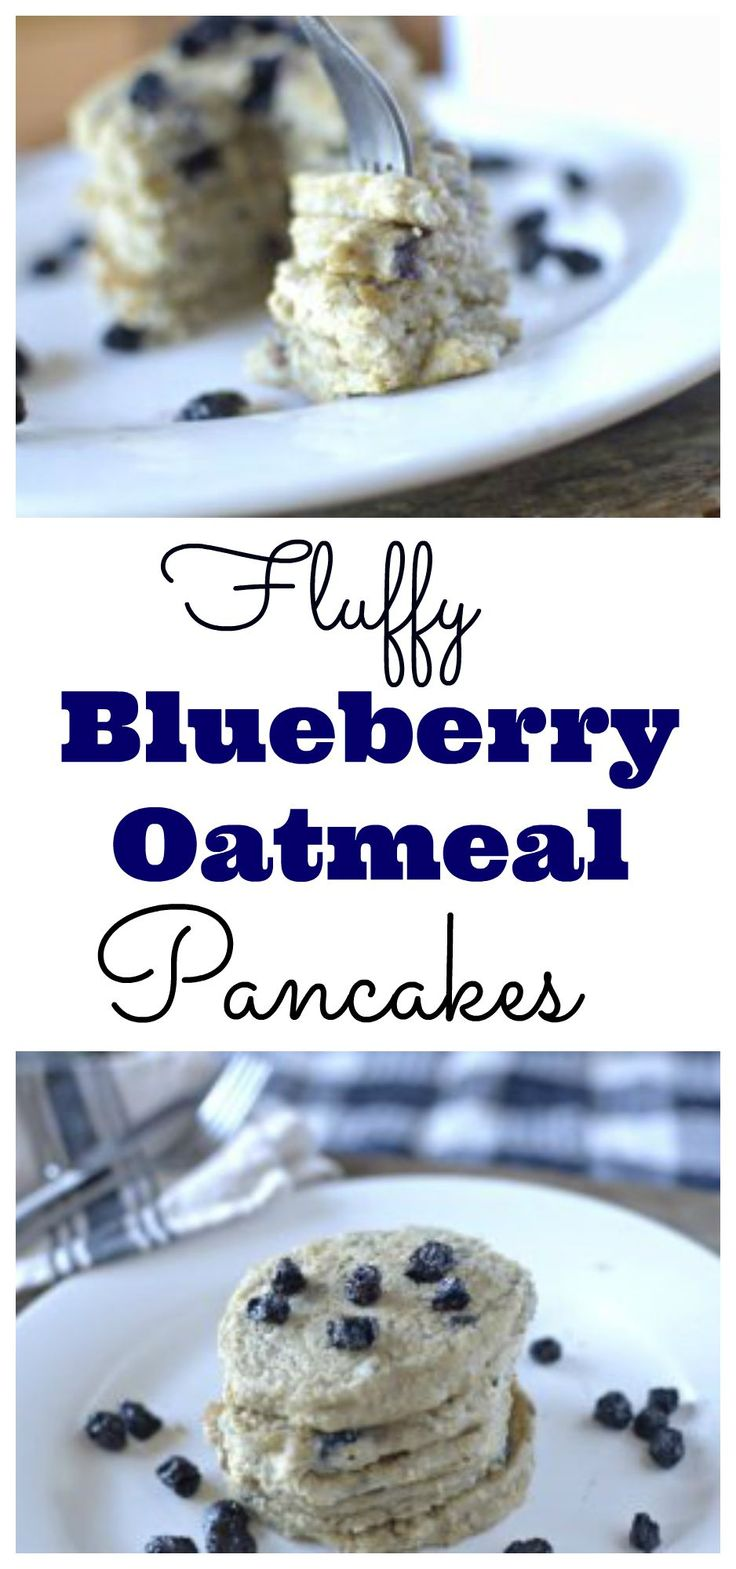 These Fluffy Blueberry Oatmeal Pancakes maybe the best pancakes ever! Made with a secret ingredient to make them extra FLUFFAY! #glutenfree #healthy #vegan